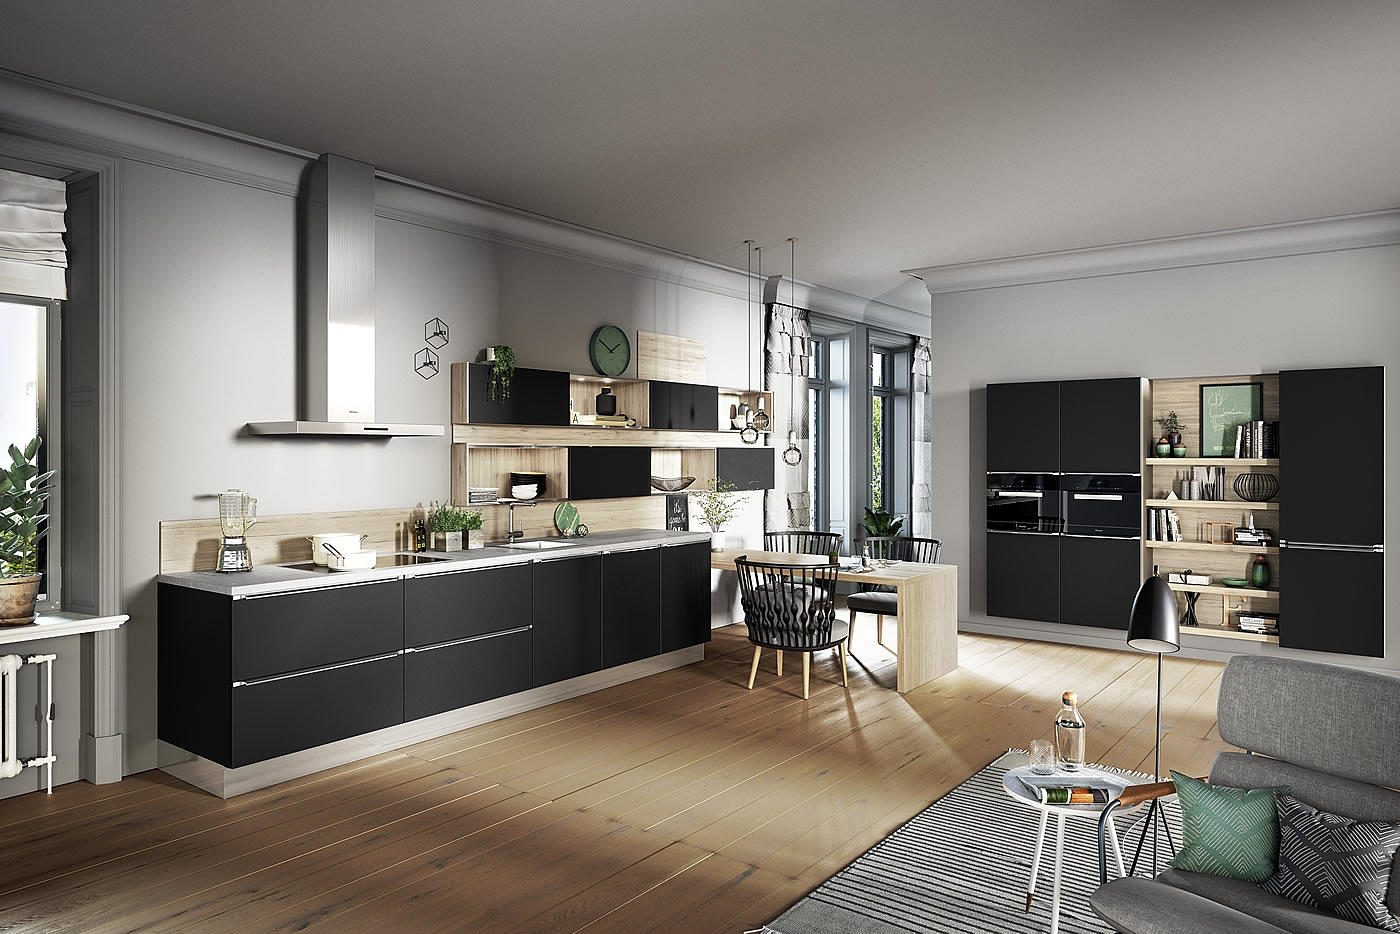 Kitchen 3 Luxury Kitchen Designs at Kitchen Evolution Sloane Square Chelsea Knightsbridge Mayfair London call 020 7730 4850